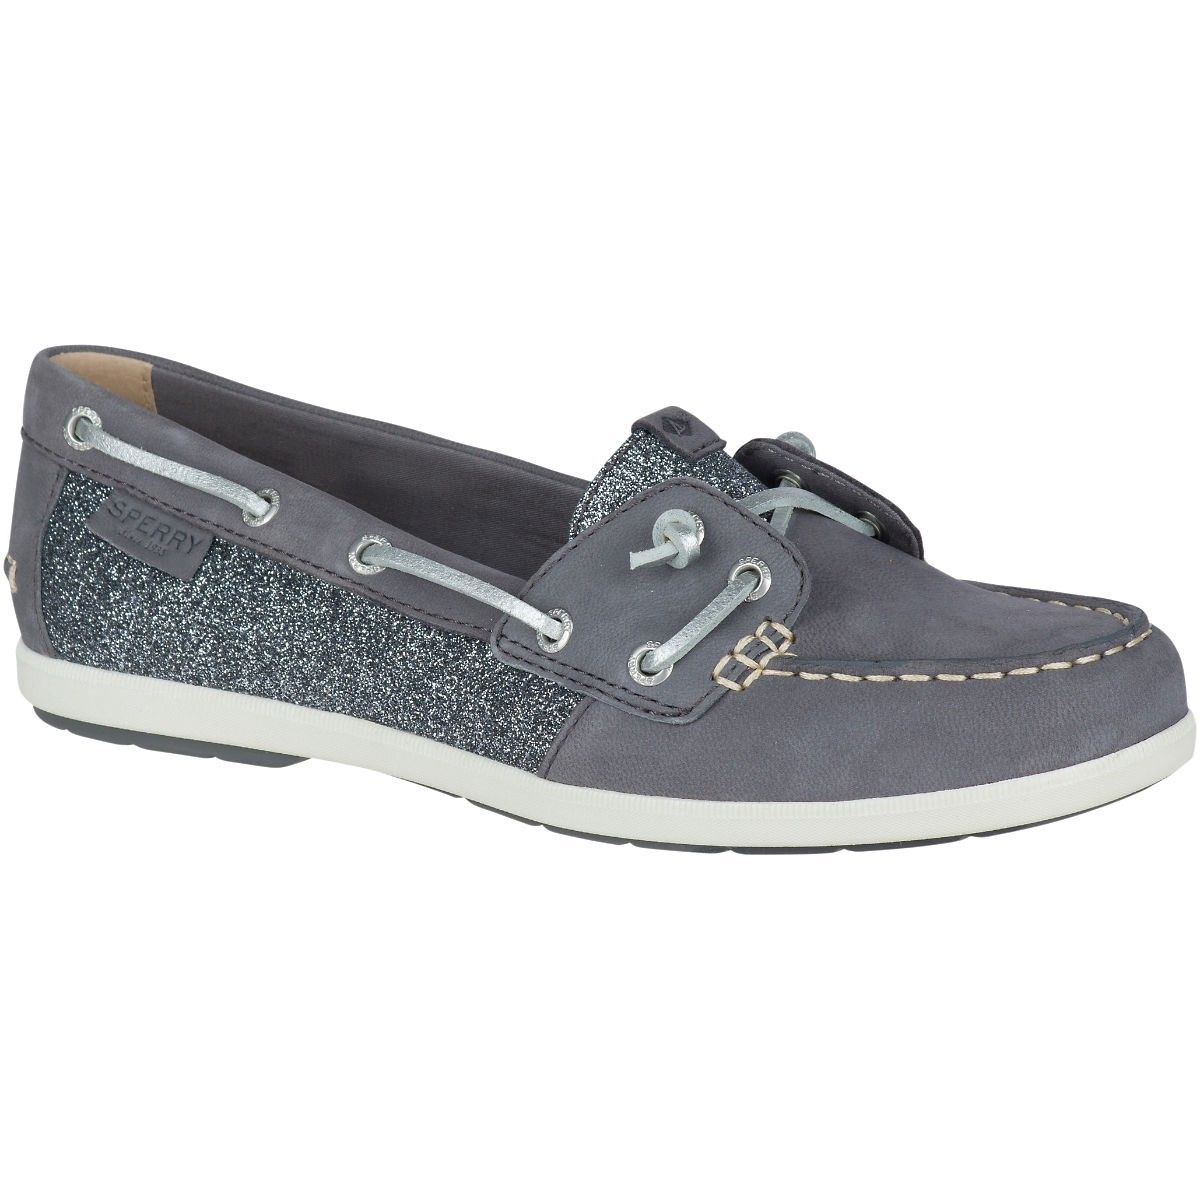 SPERRY Women's Coil Ivy Sparkle Boat